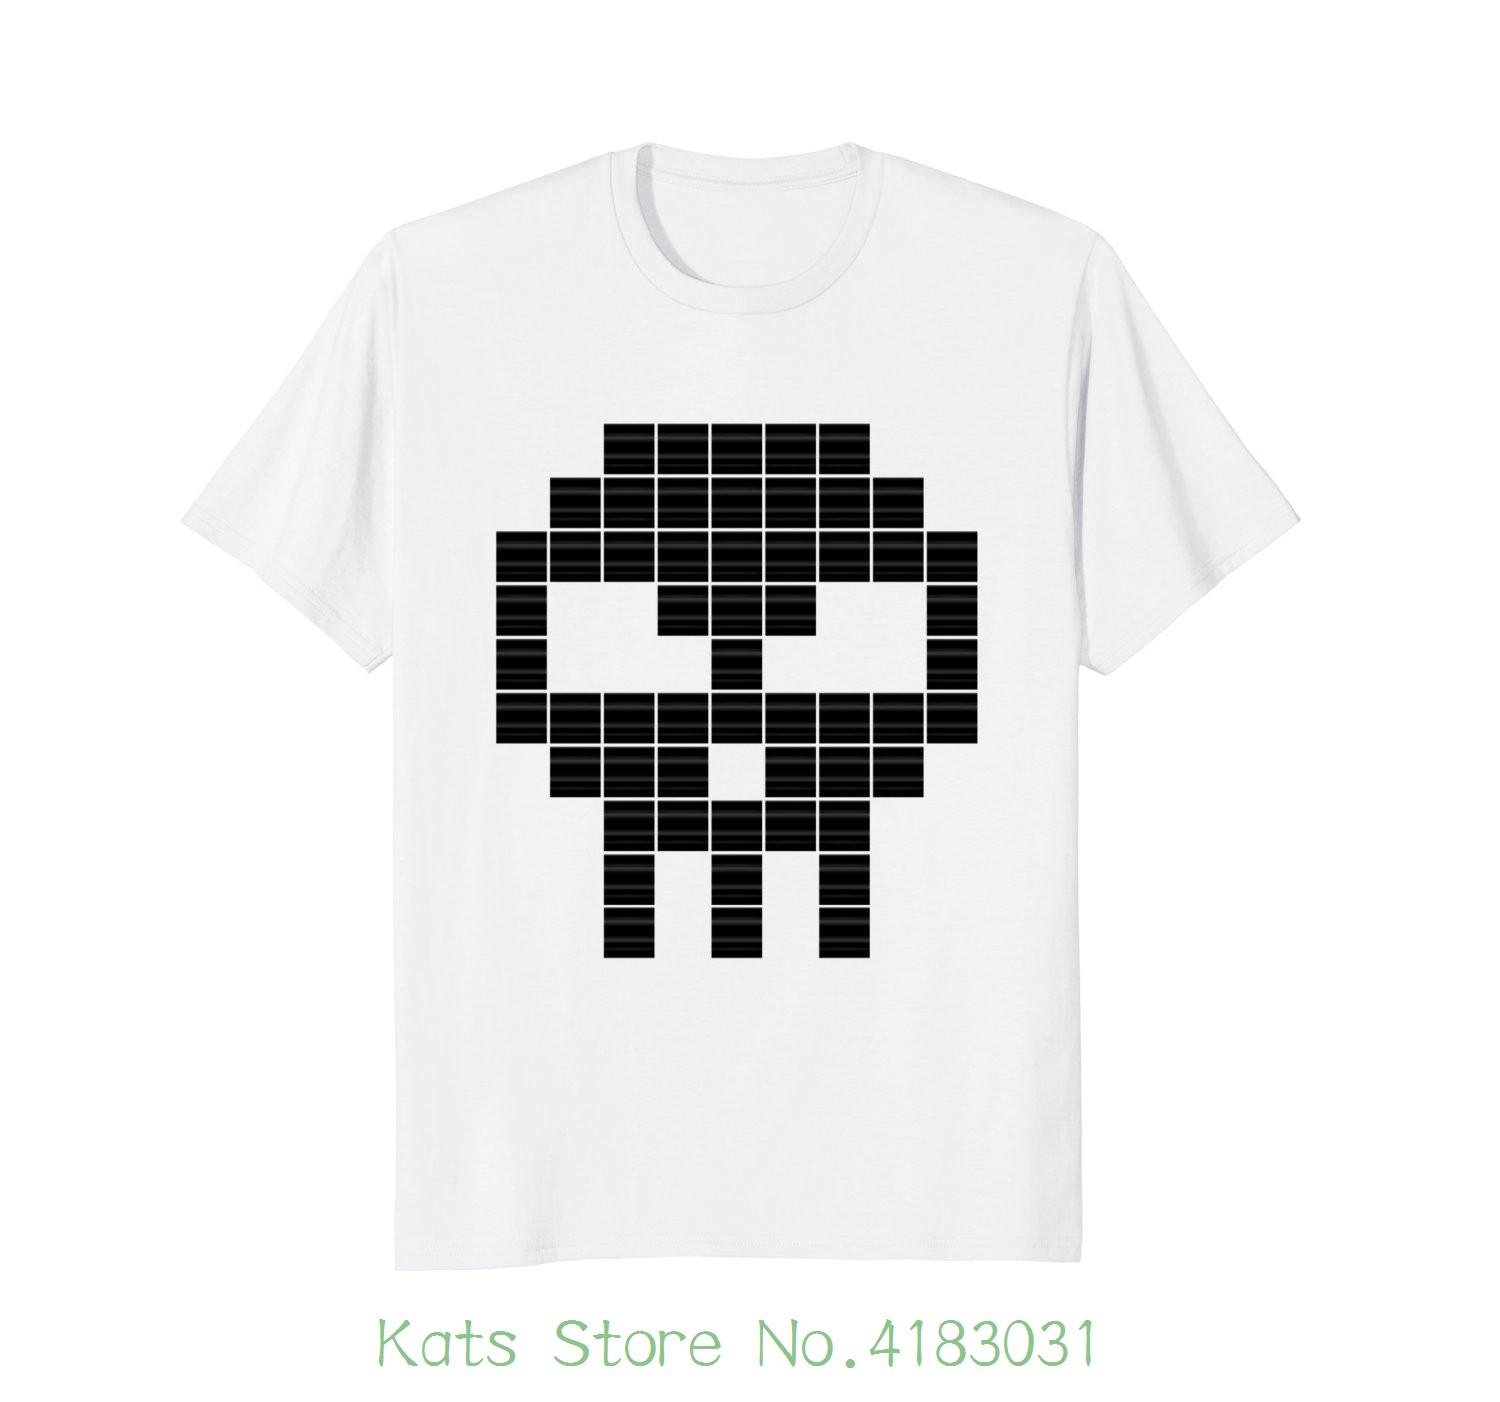 2d70f3ce8 Gamer Shirt Pixel Skull Loose Cotton T Shirts For Men Cool Tops T Shirts  Funny Tee T Shirt Buy From Katsstore, $24.2| DHgate.Com